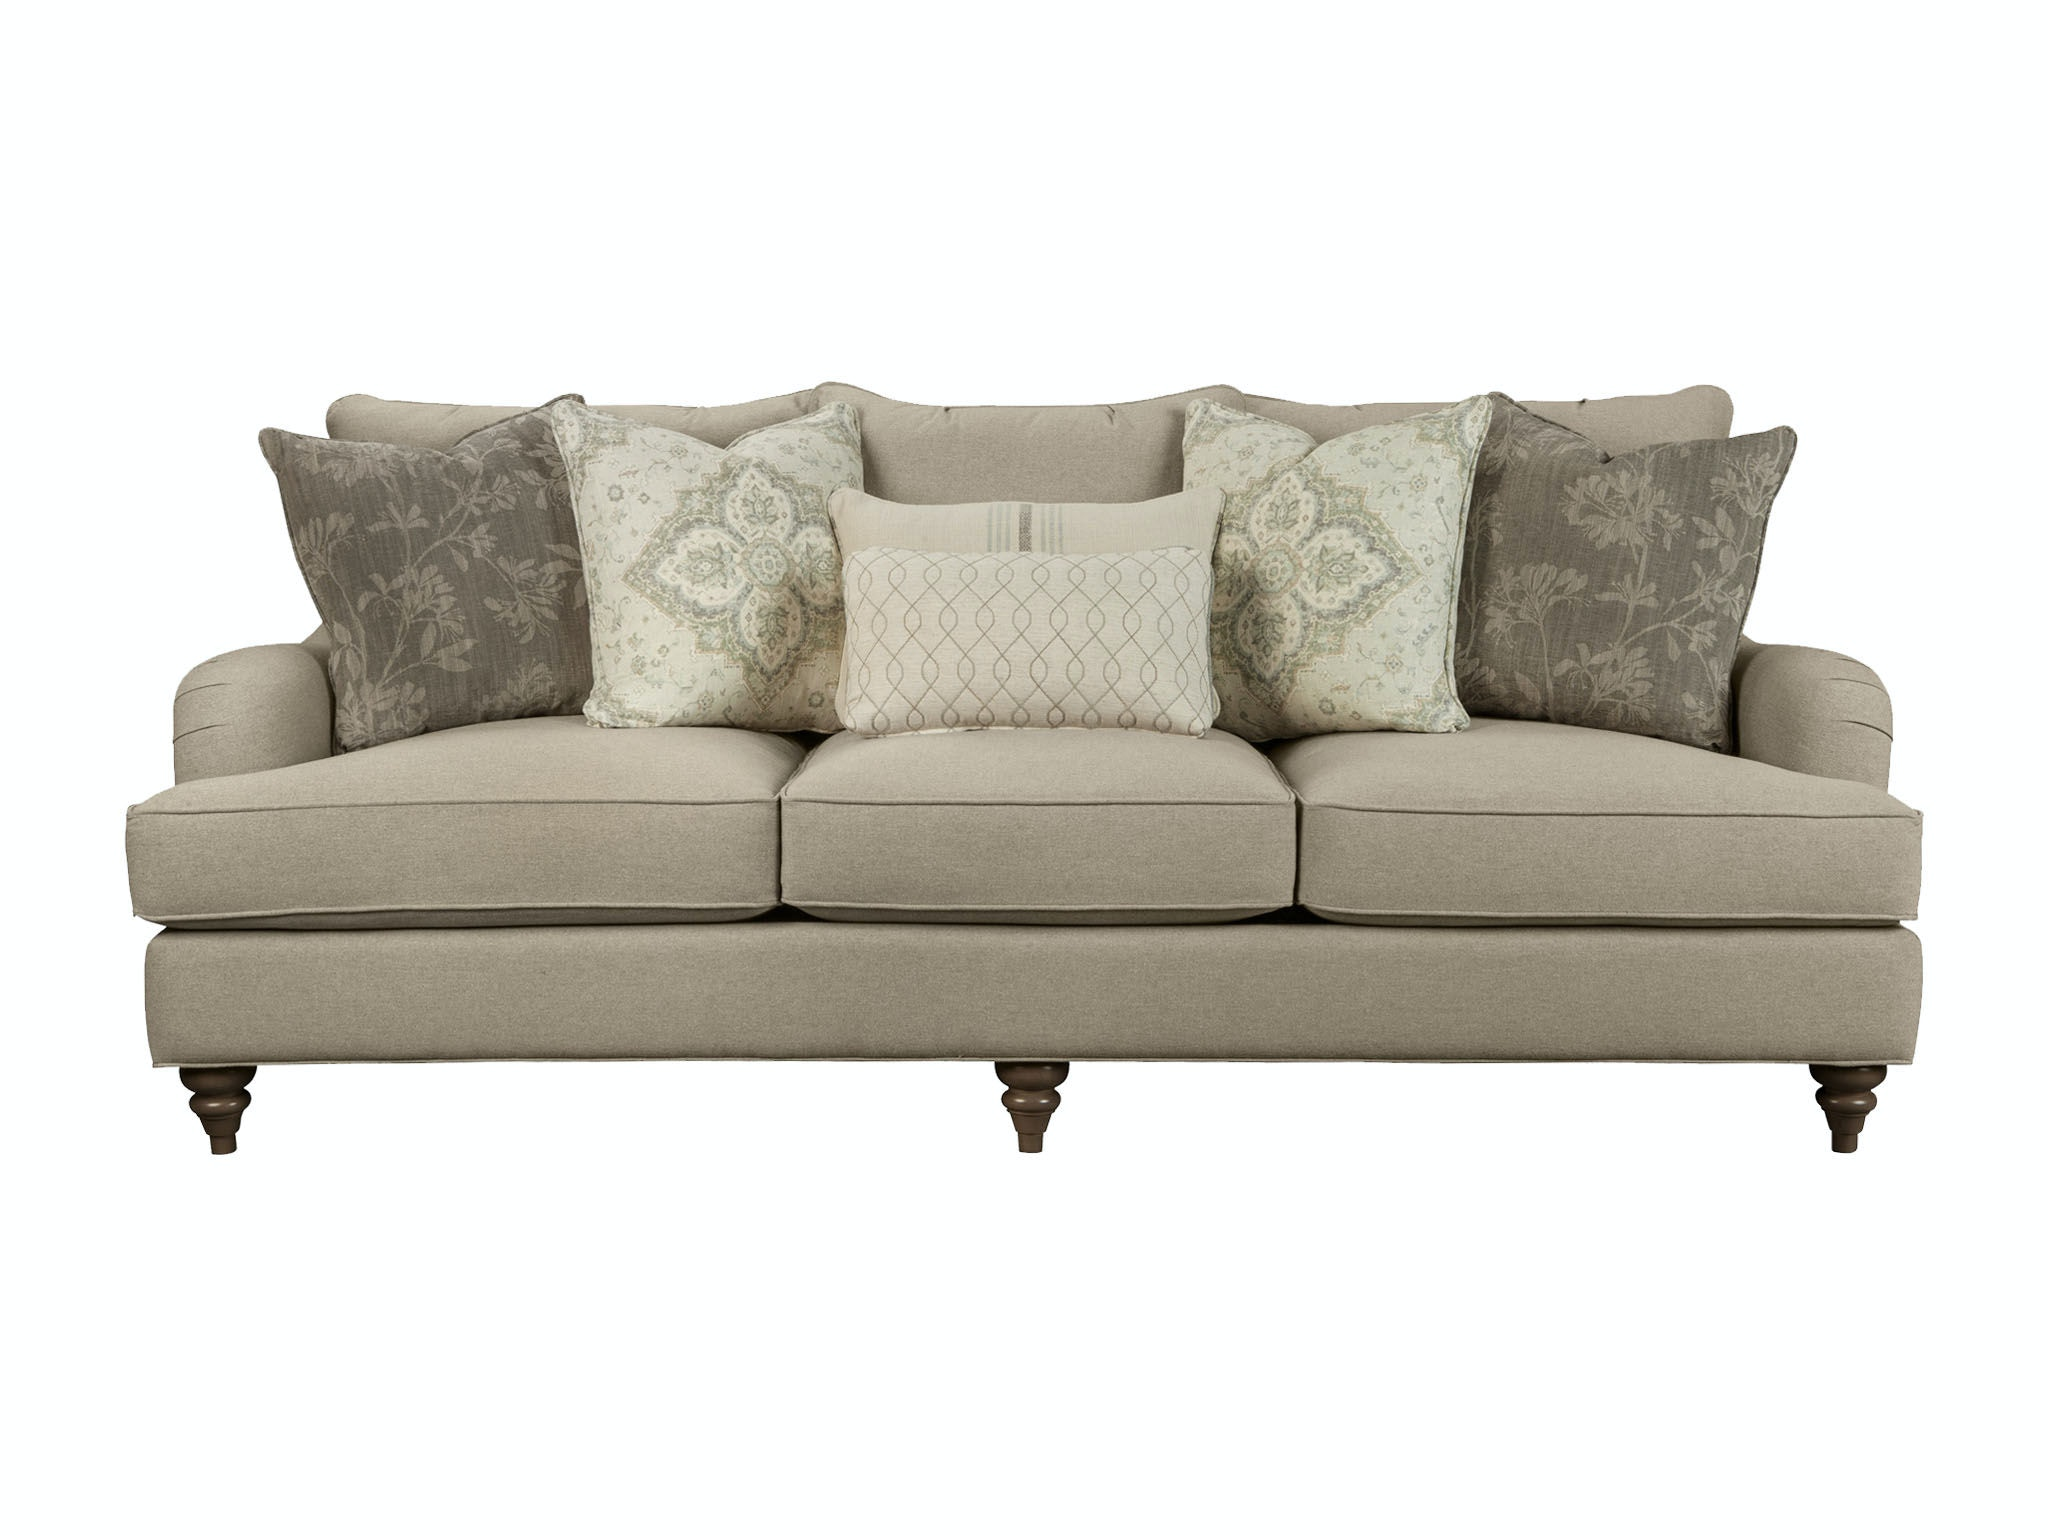 Paula Deen By Craftmaster Sofa P773654BD